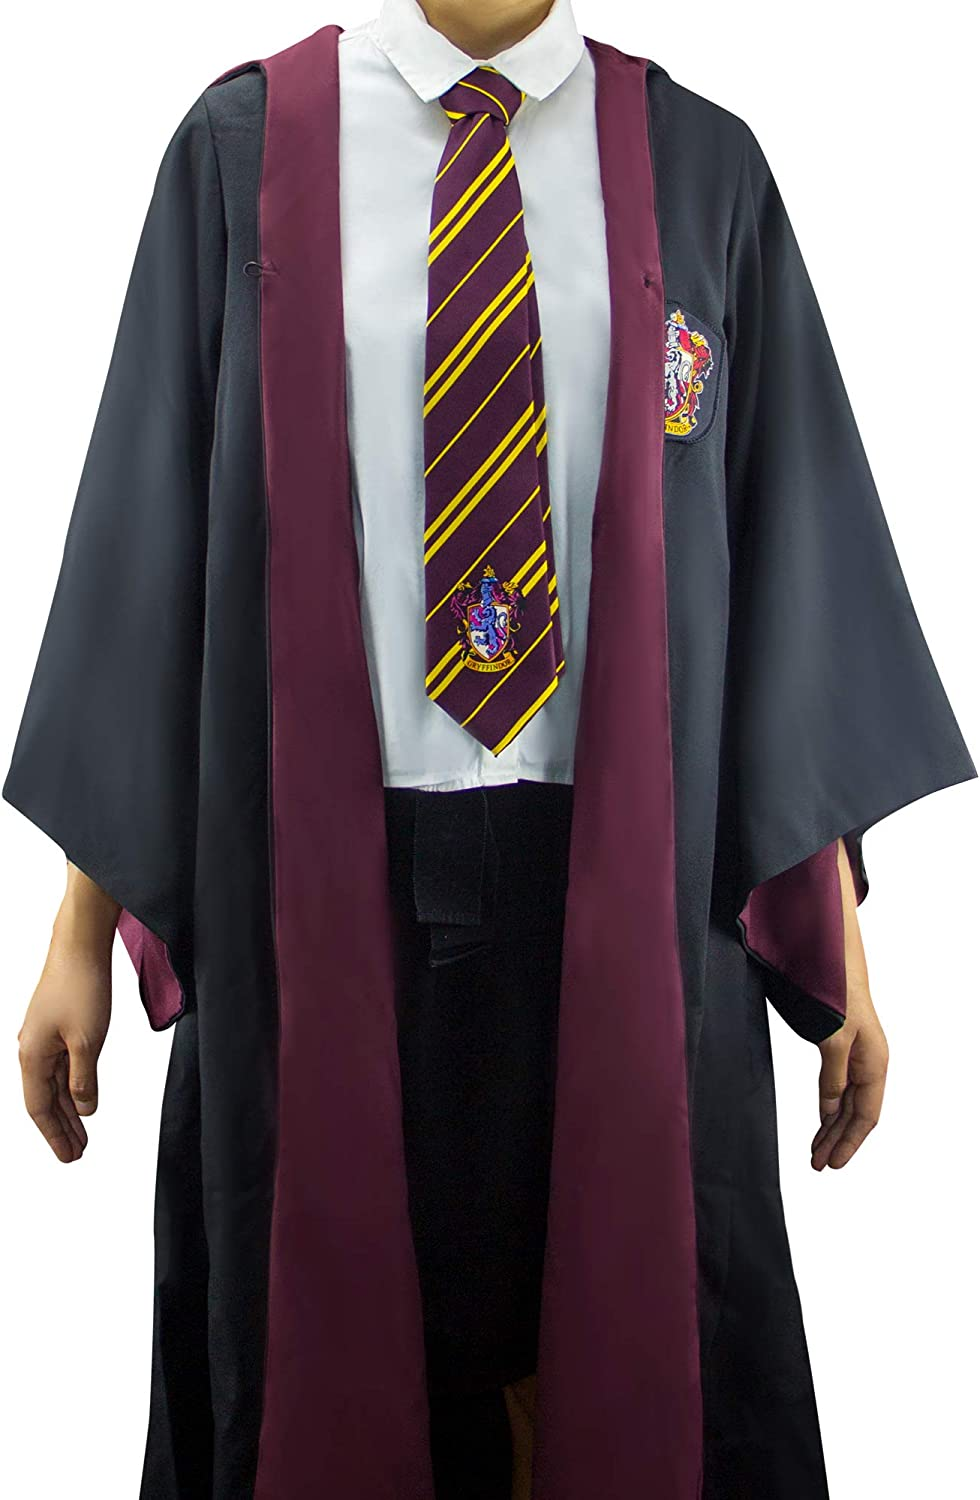 Harry Potter The adult size Robe Cloak giving knit wrap and tie